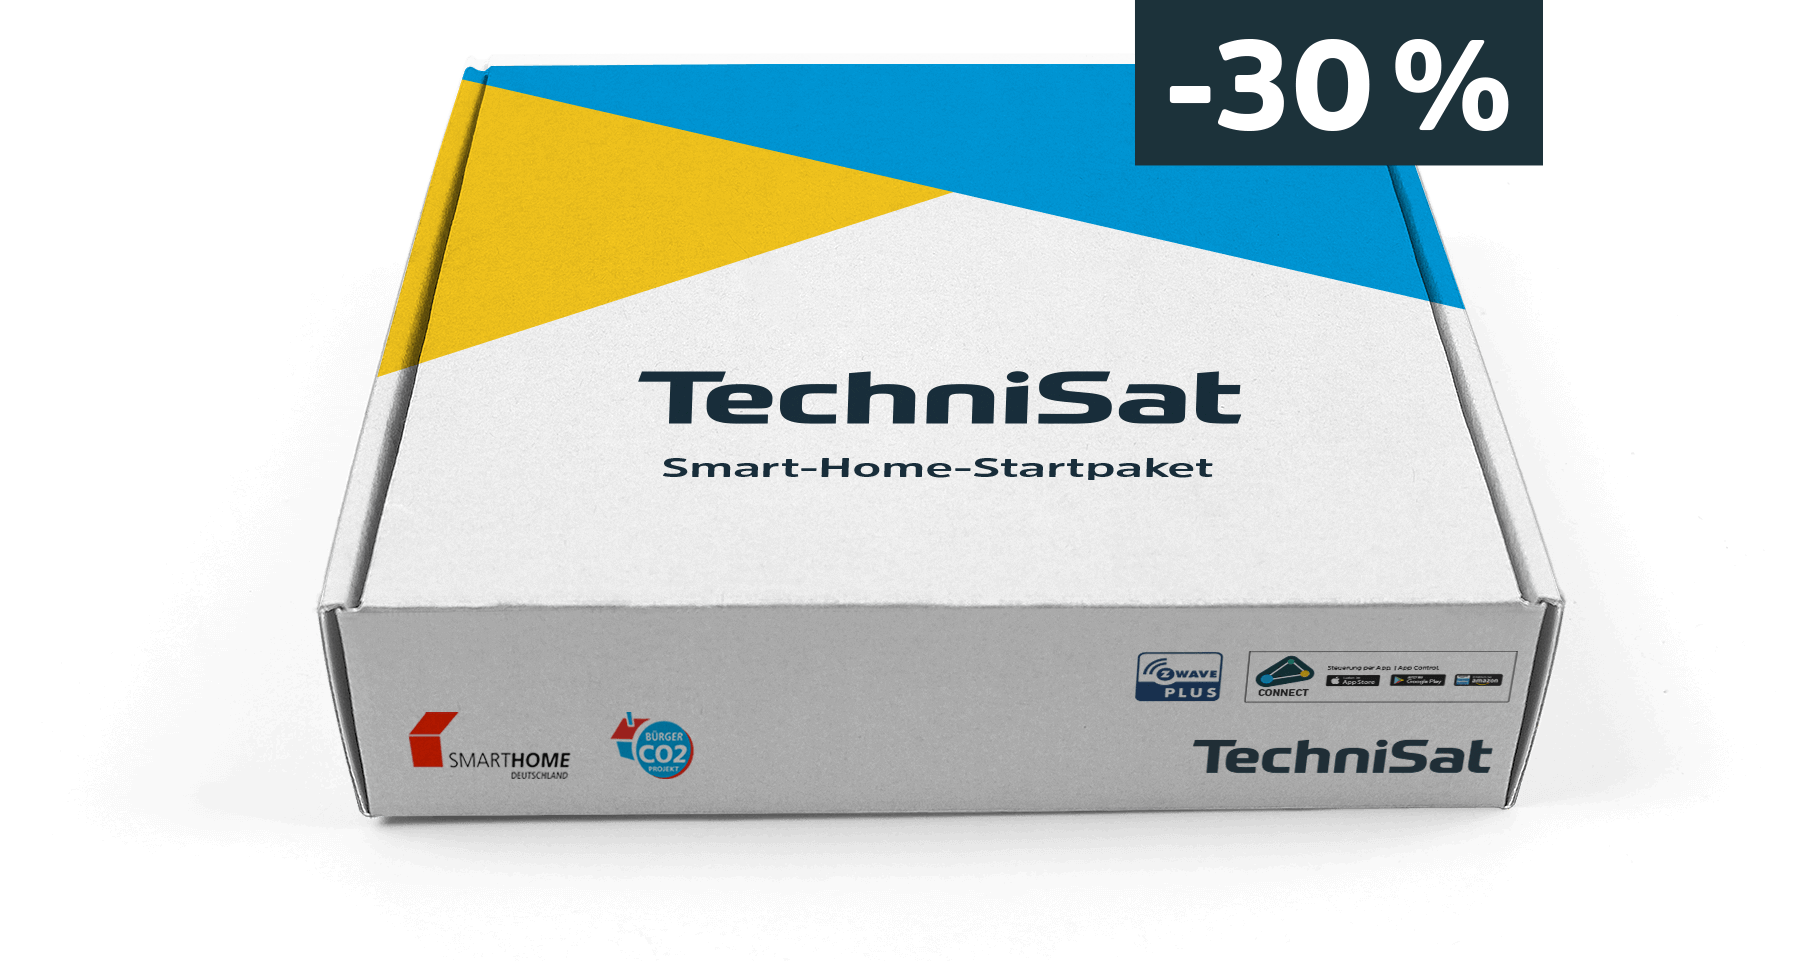 Technisat Smart Home Startpacket